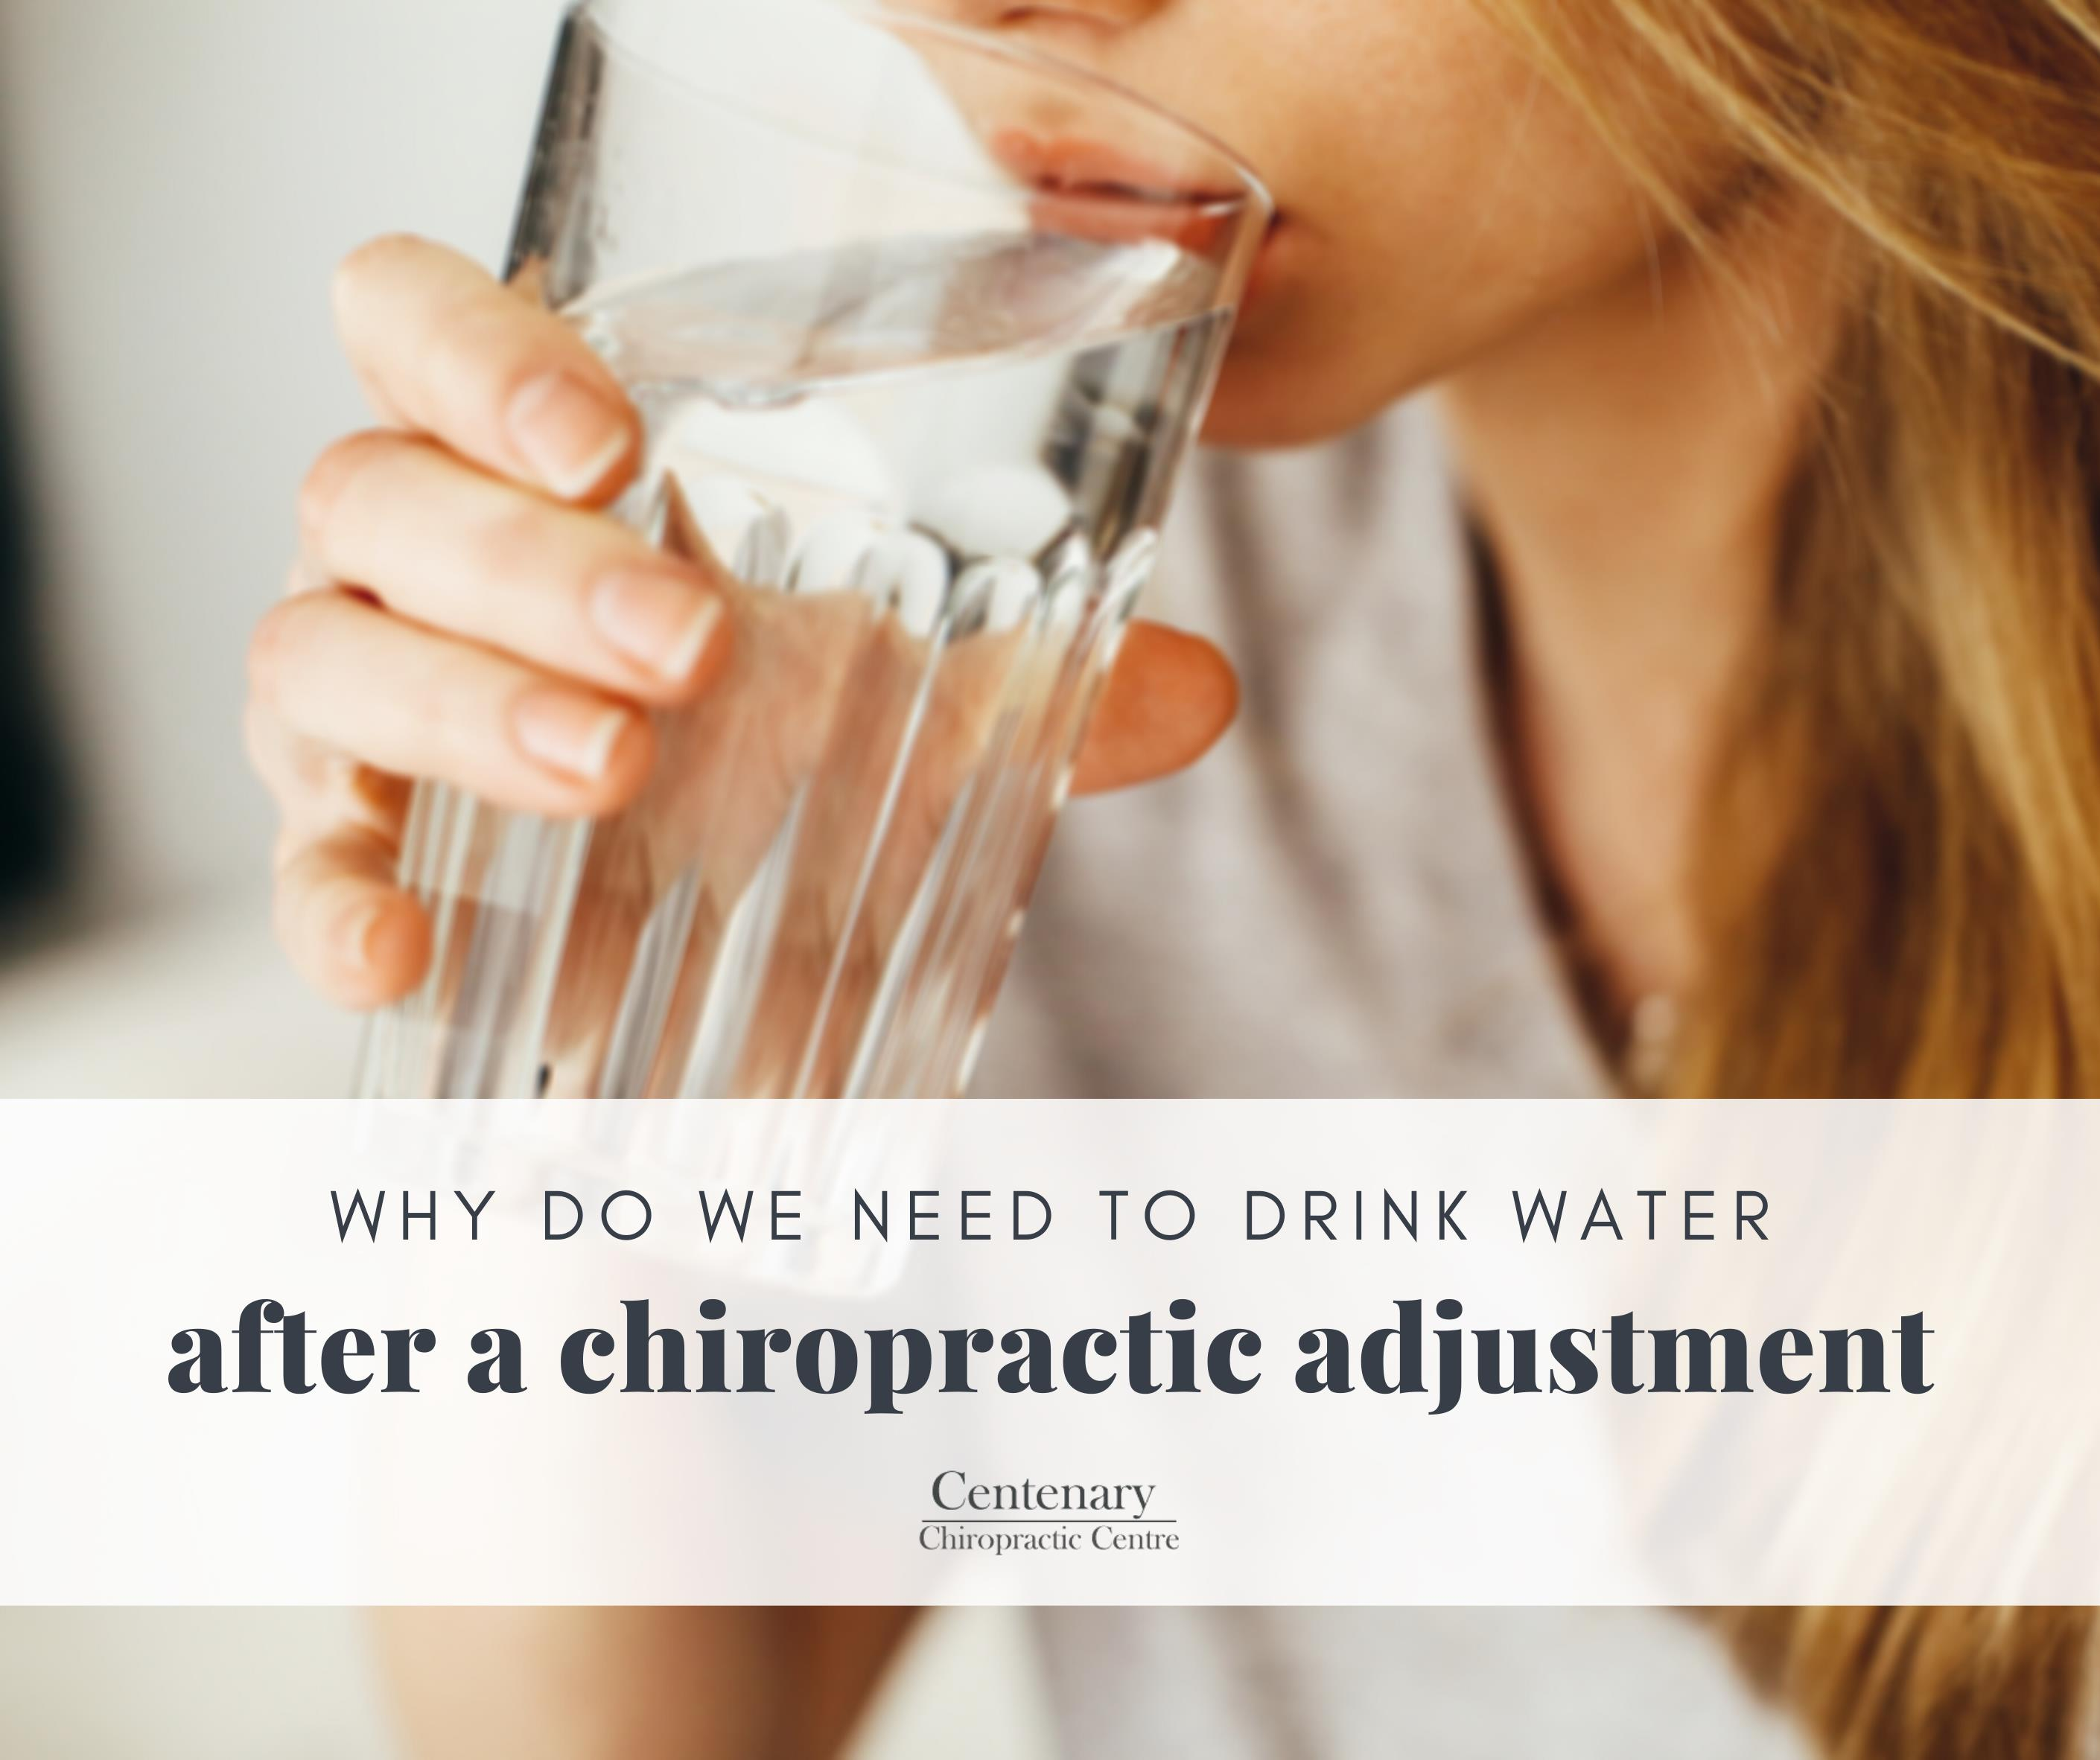 Why do we Need to Drink Water After a Chiropractic Adjustment?